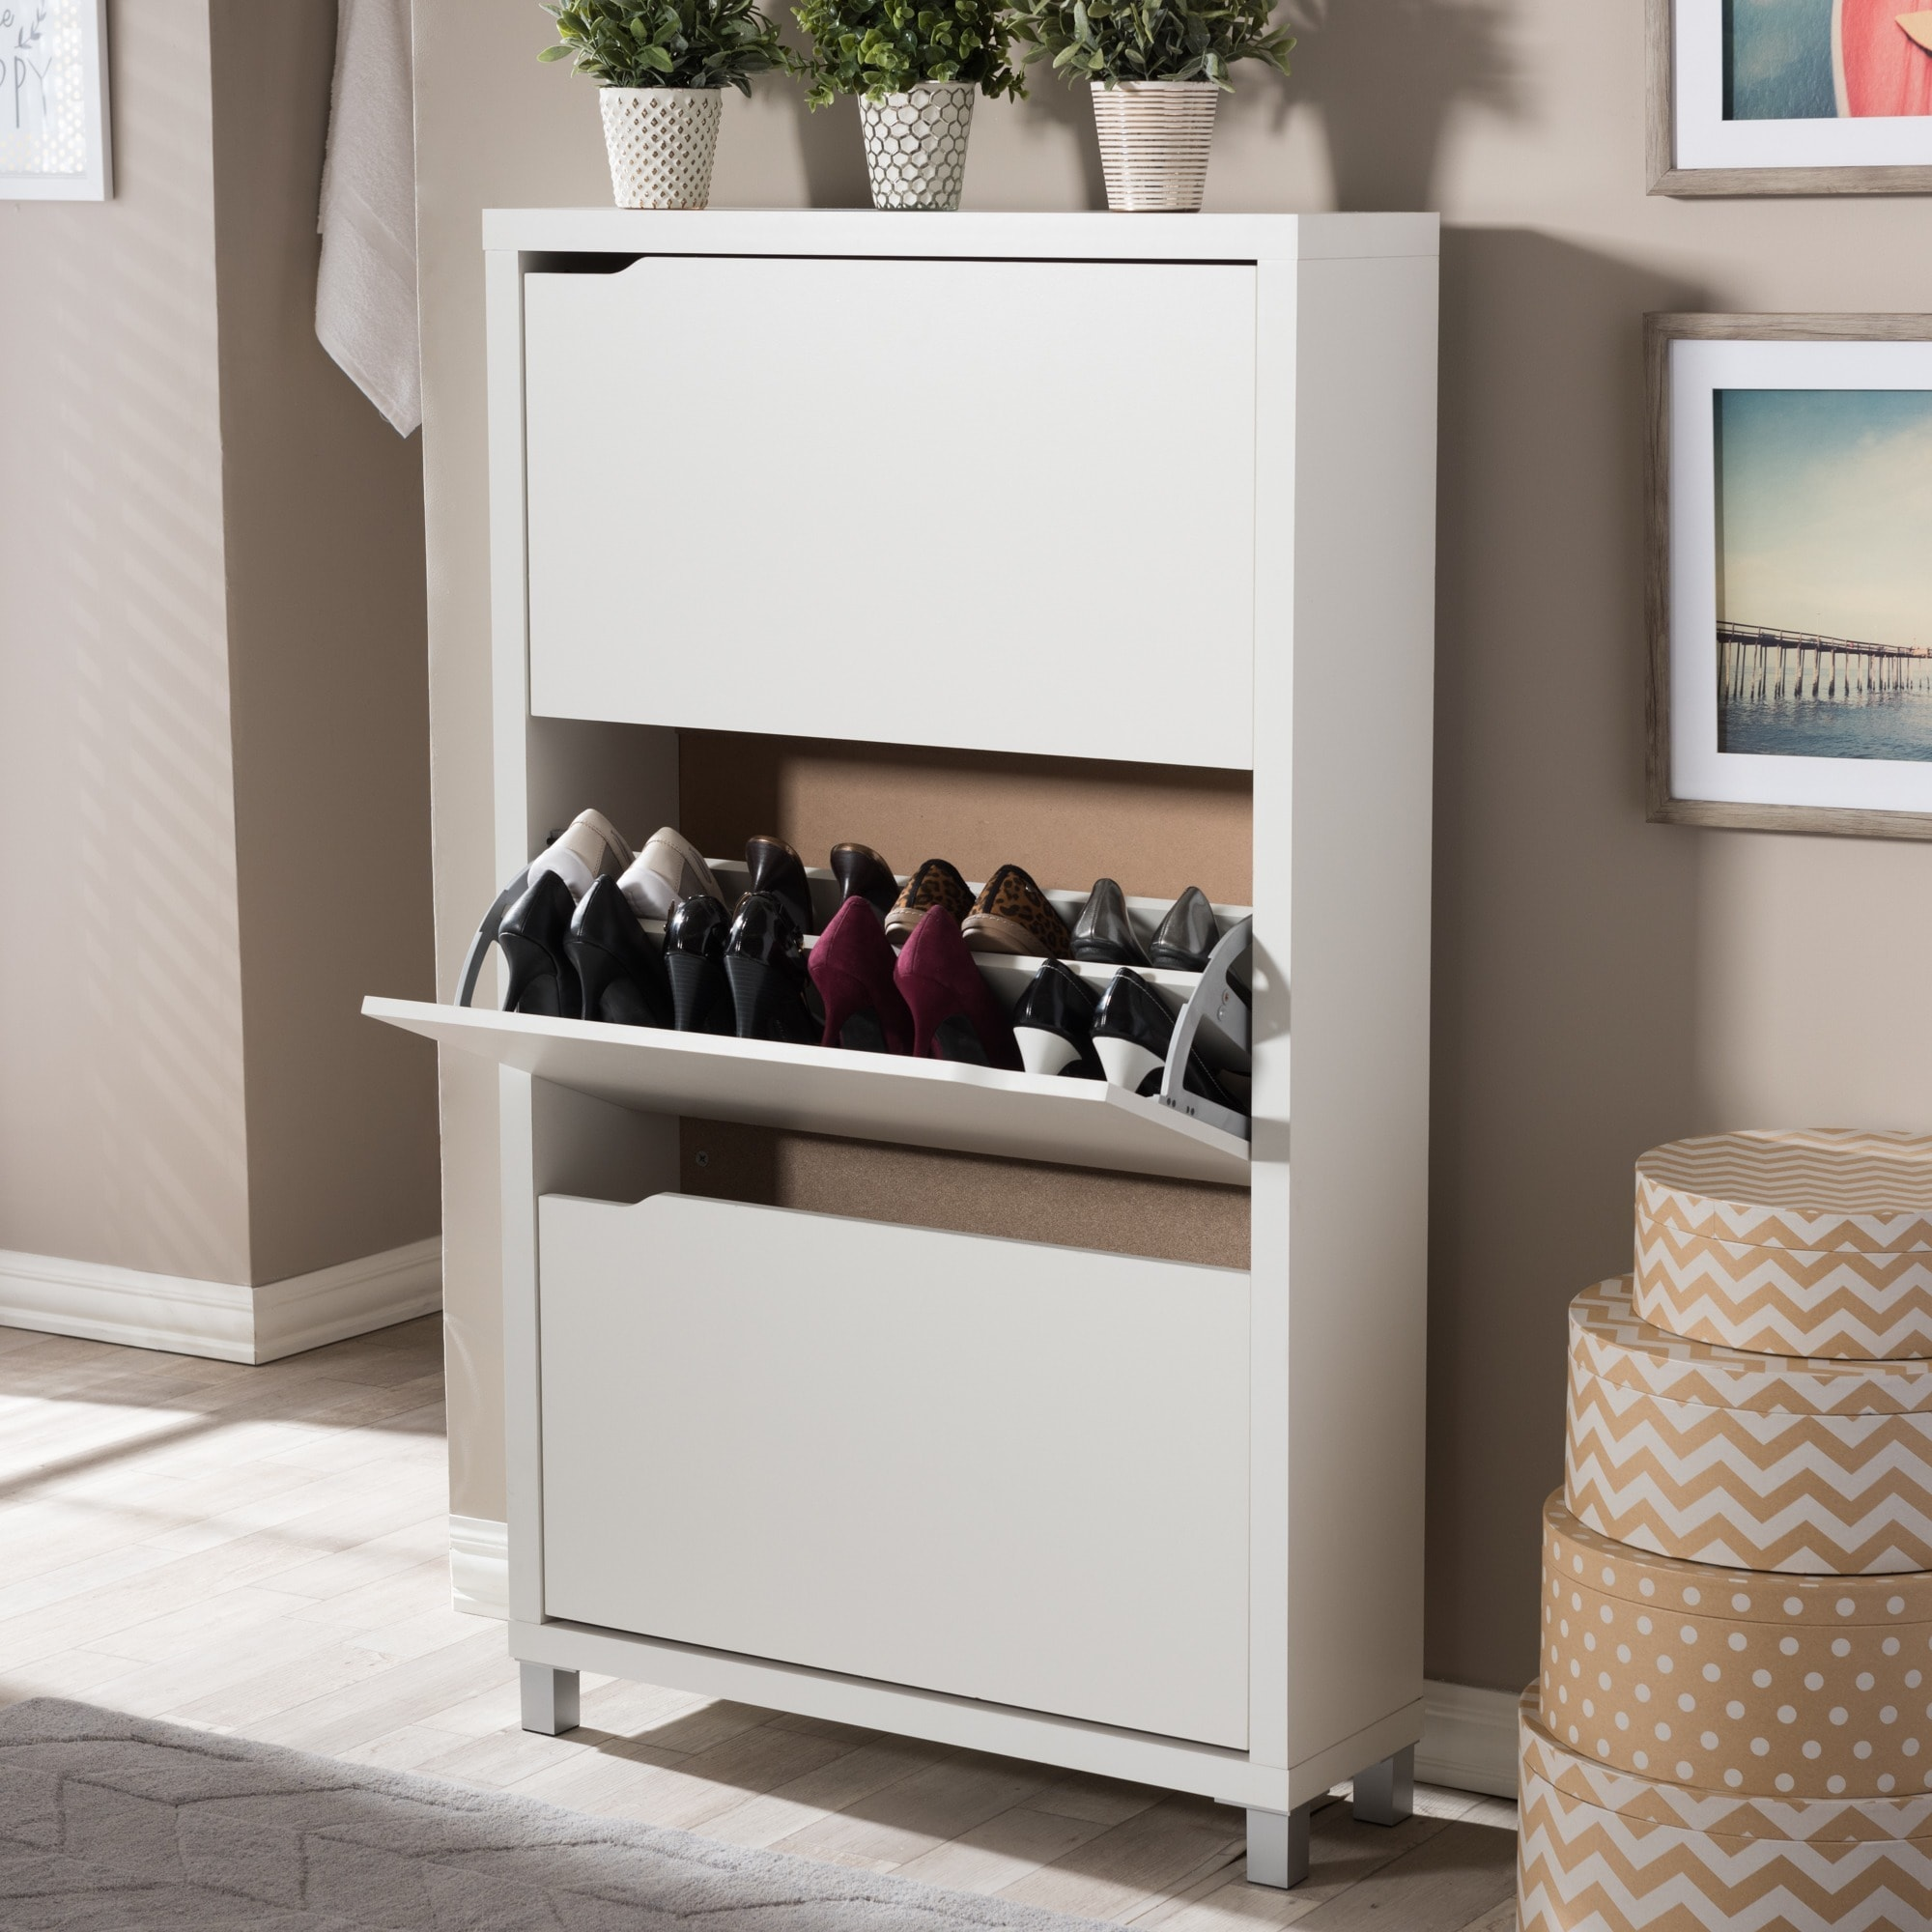 Baxton Studio 'Marsha' Modern Double Shoe Cabinet - Free Shipping Today -  Overstock.com - 15039138